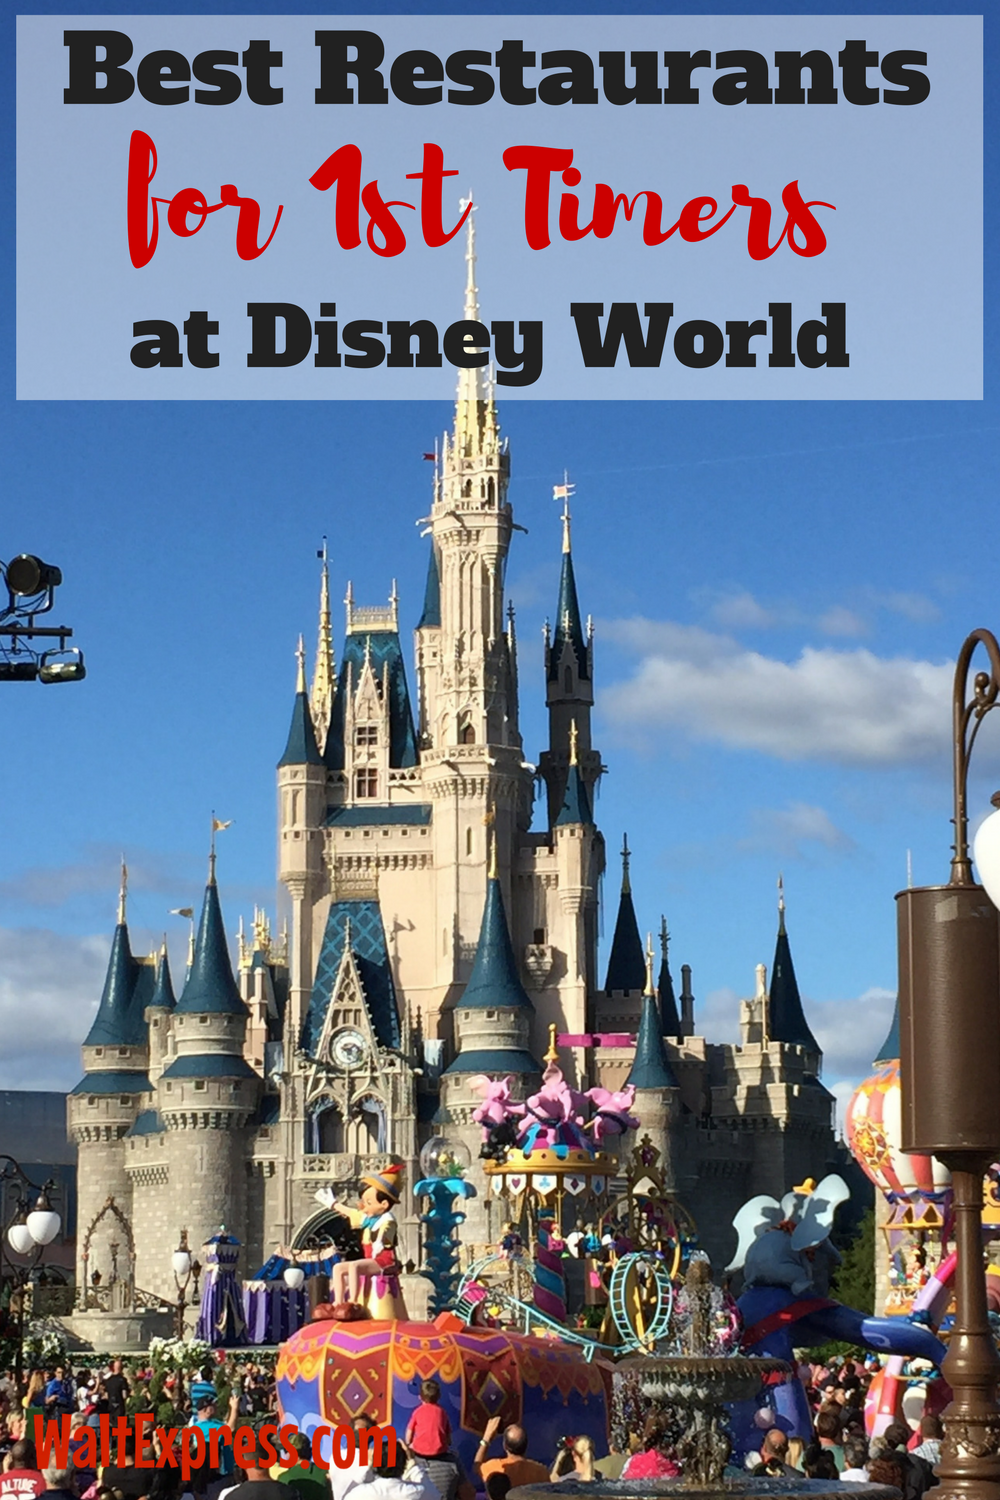 Best Restaurants For 1st Timers At Disney World